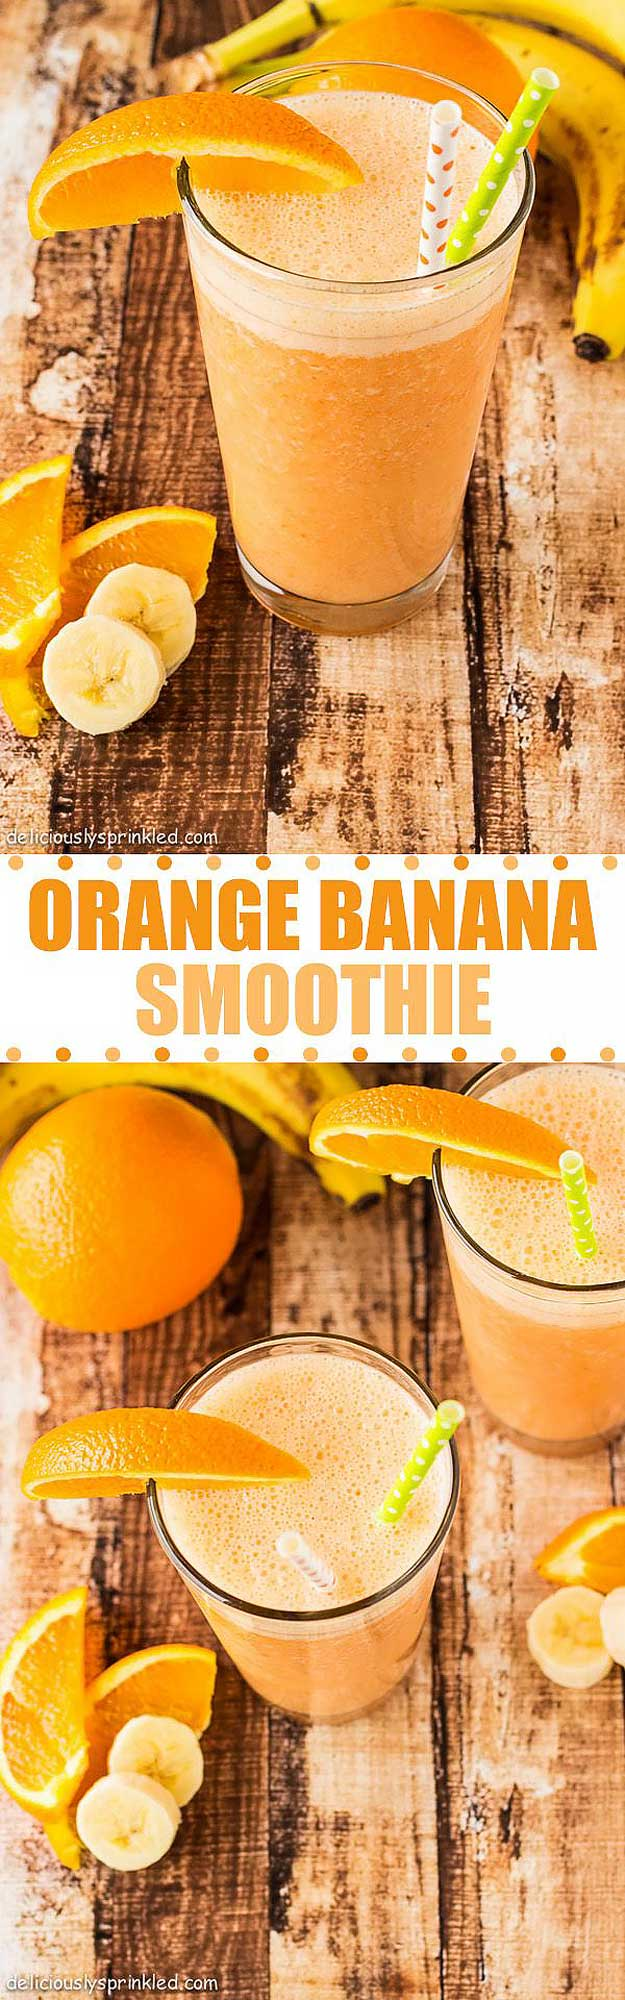 Healthy smoothie recipes and easy ideas perfect for breakfast, energy. Low calorie and high protein recipes for weightloss and to lose weight. Simple homemade recipe ideas that kids love. | Orange Banana Smoothie #smoothies #recipess